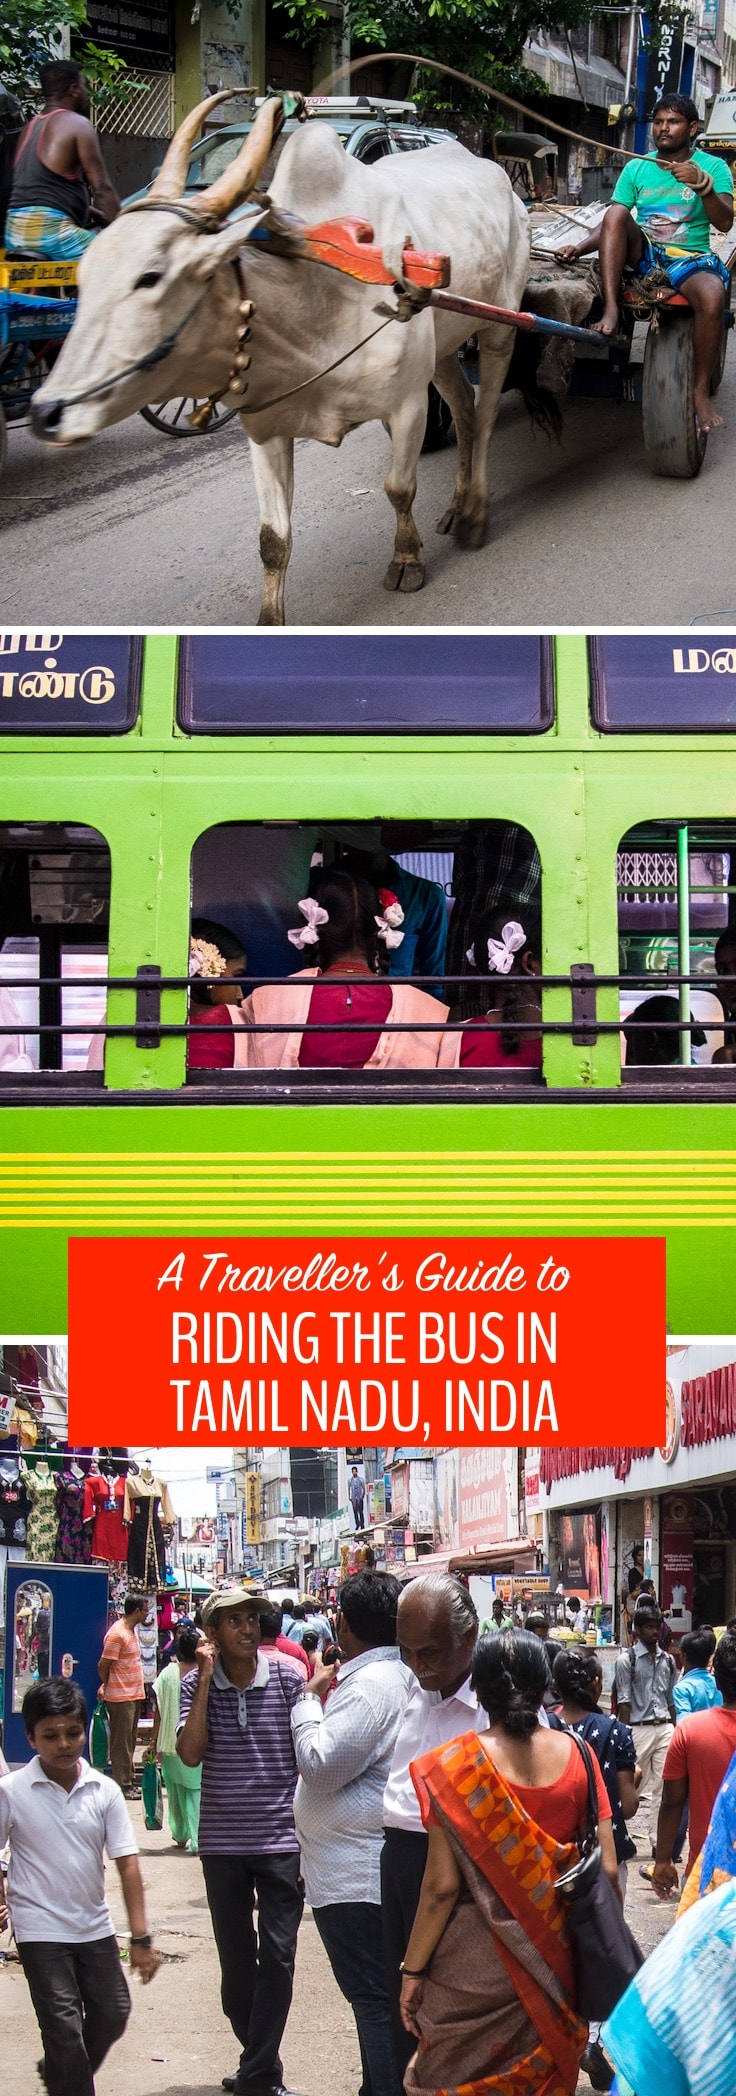 Before we took our first bus in Tamil Nadu, it seemed that navigating the confusing and apparently disorganized bus system would be an impossibility. We're saying nothing for the comfort, but if you want a true cultural experience, riding the bus in Tamil Nadu is the place to find it. Here's how to do it: